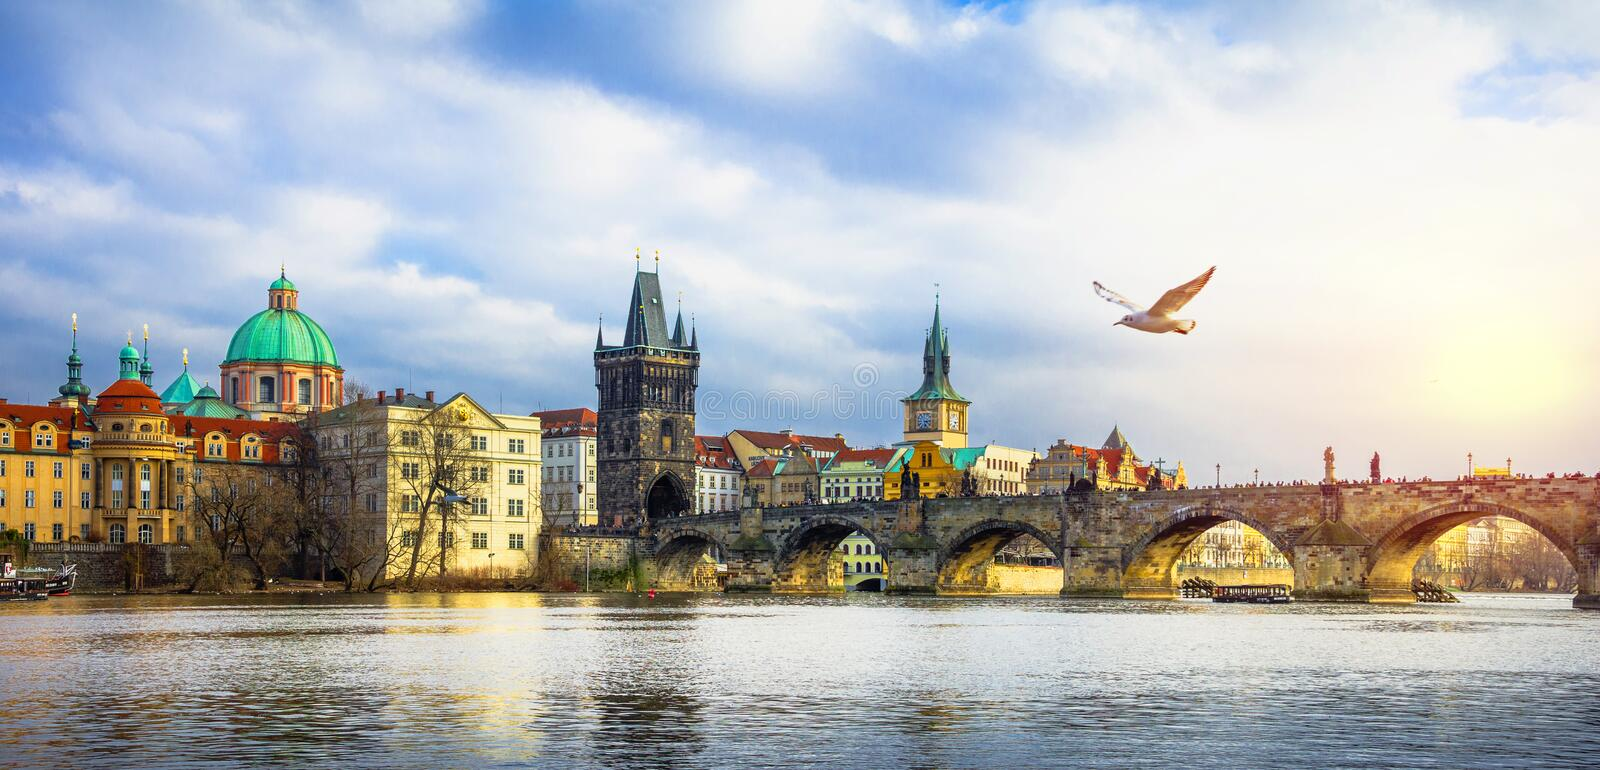 Famous Charles Bridge and tower, Prague, Czech Republic royalty free stock photo